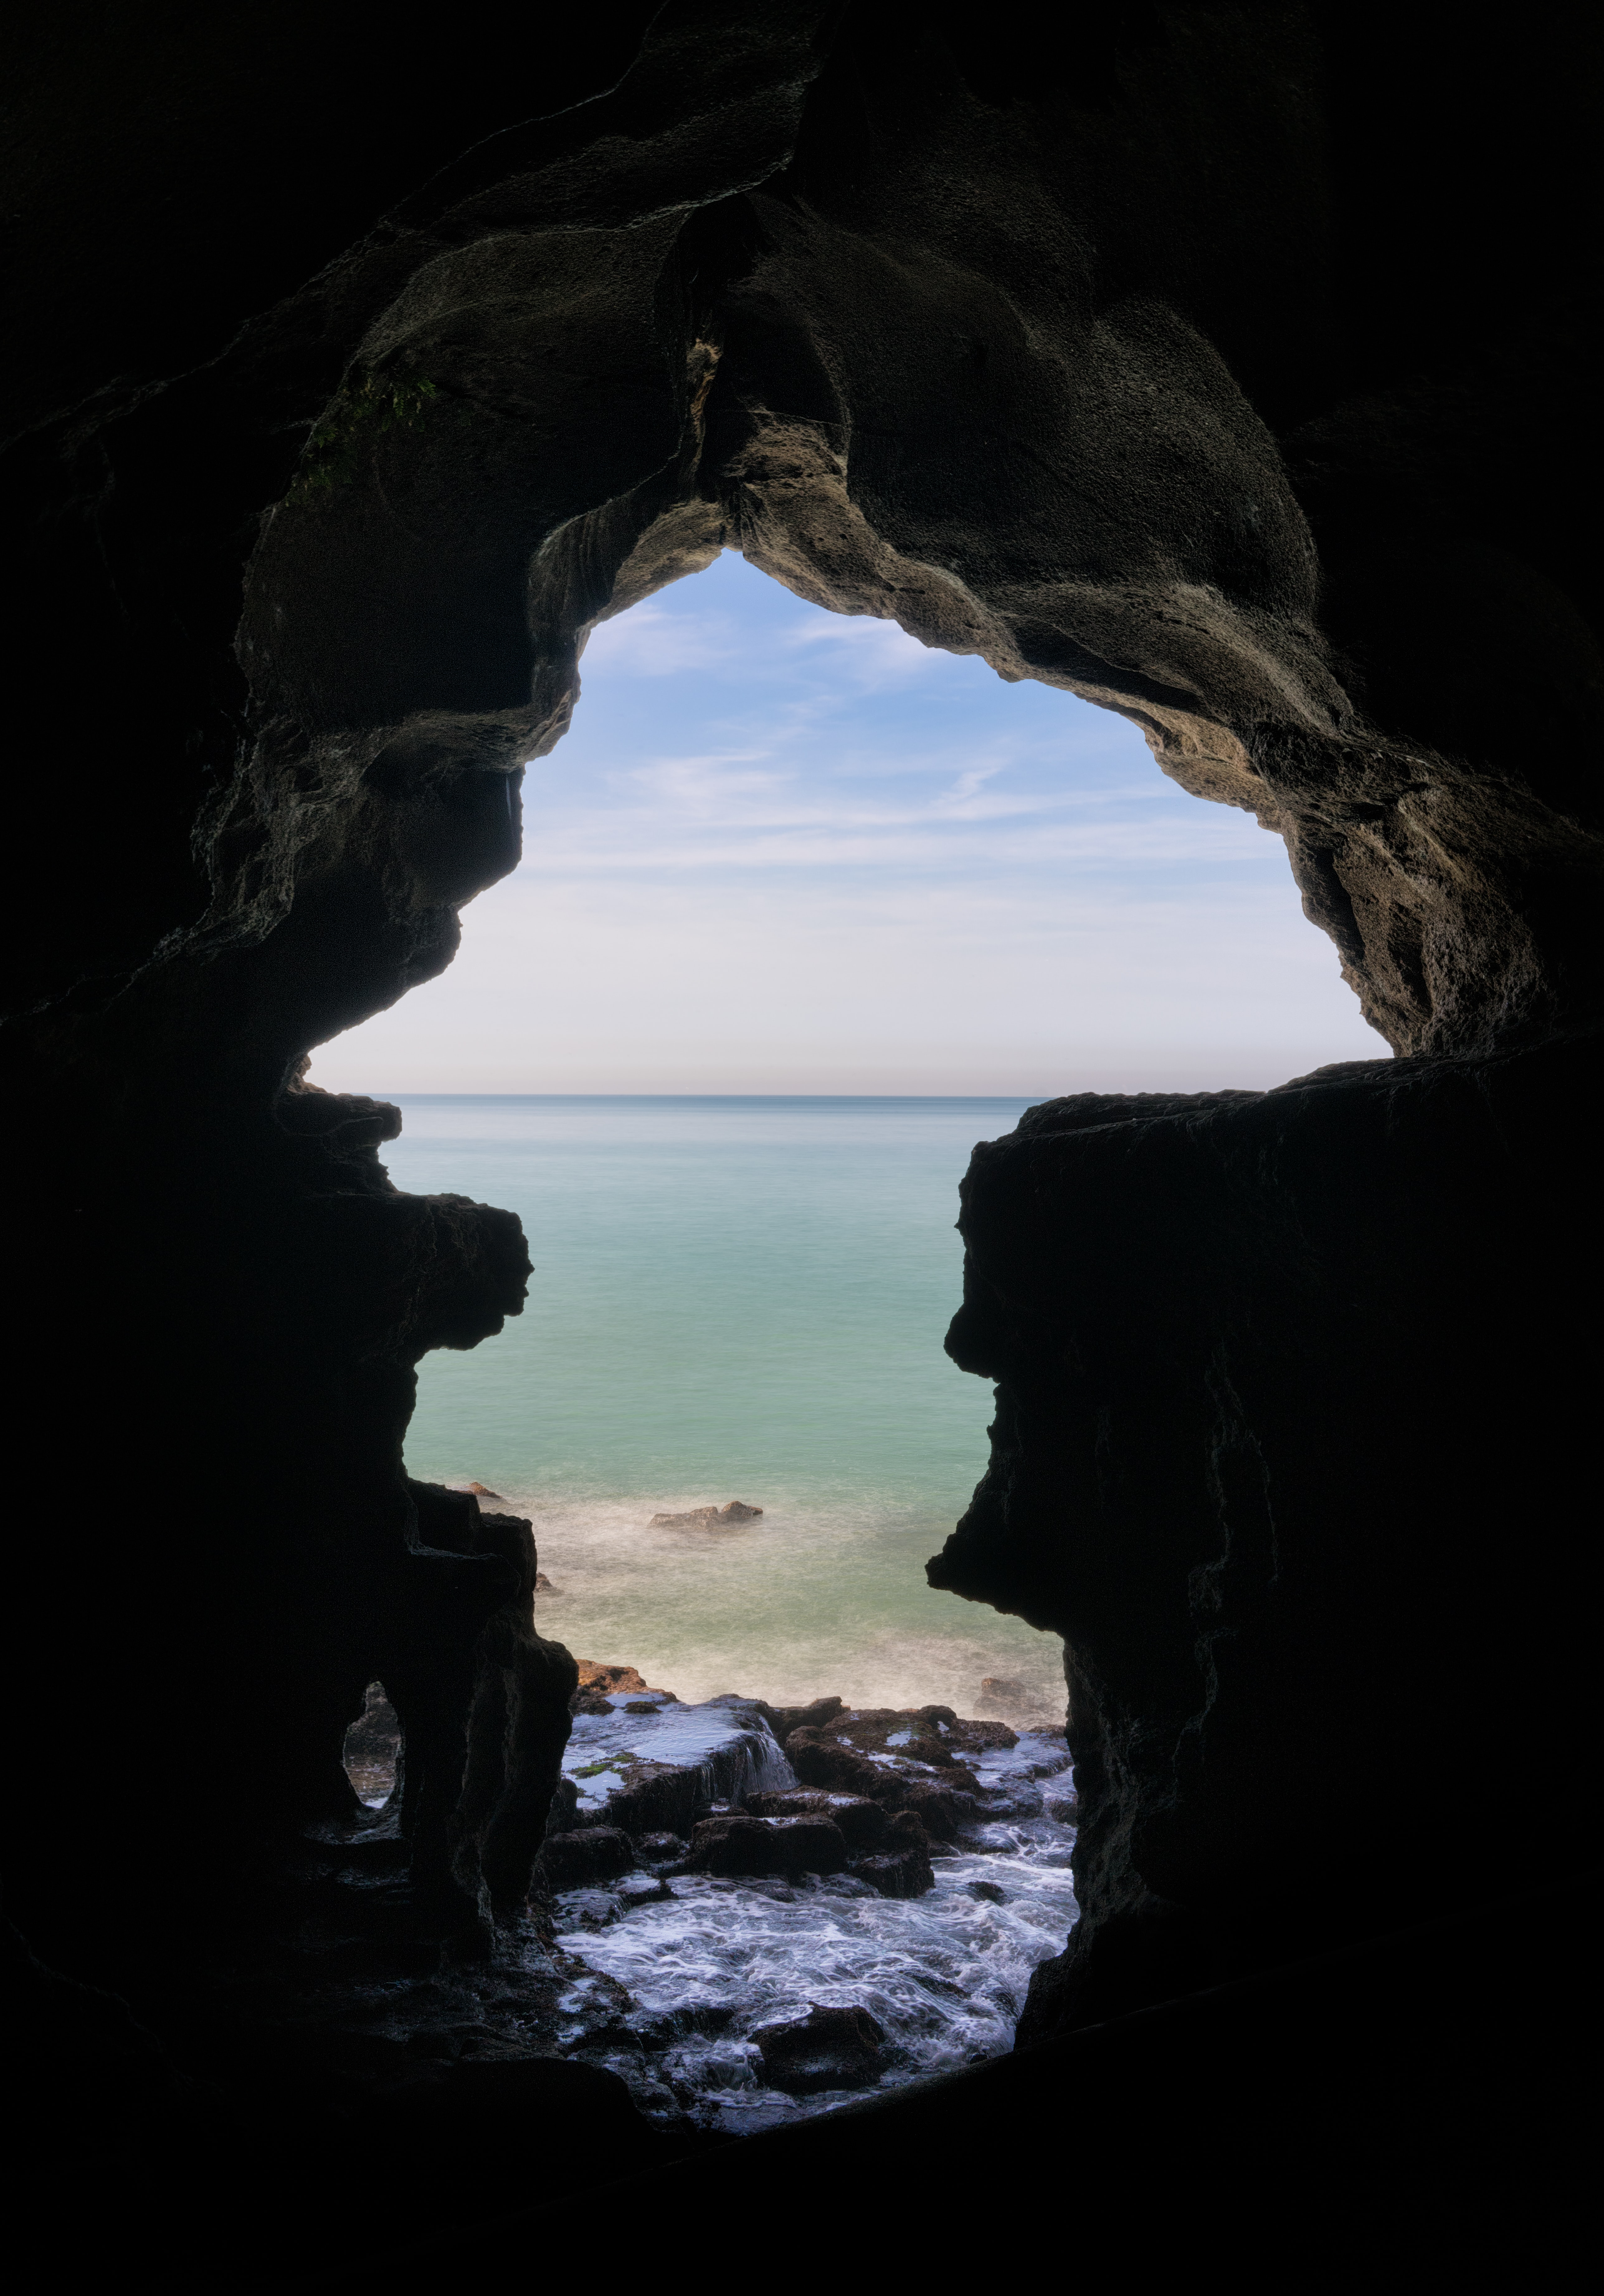 body of water near cave